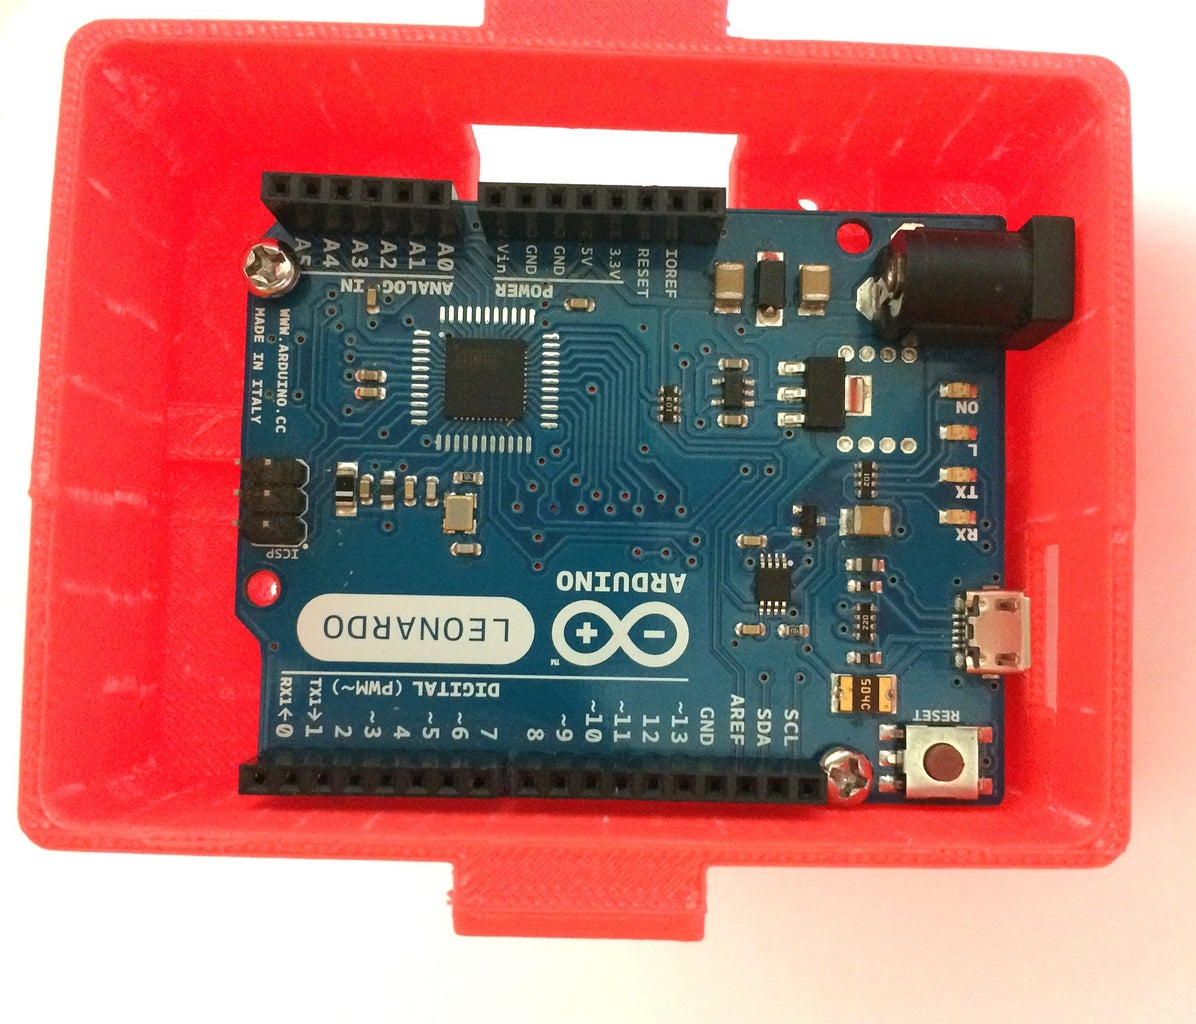 Mounting the Arduino Cover